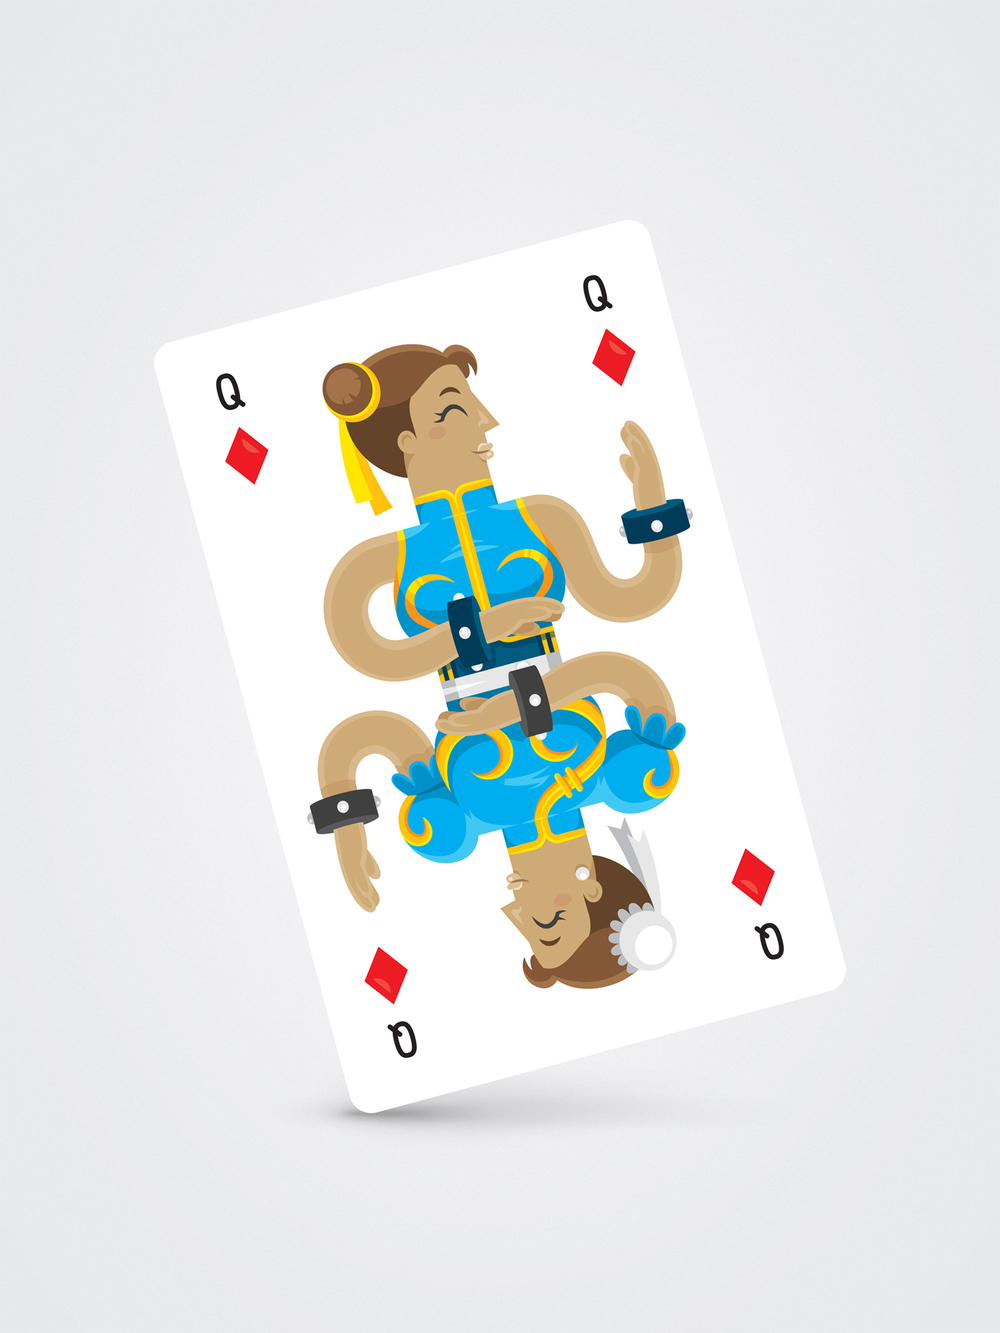 Chun Li – Queen of Diamonds